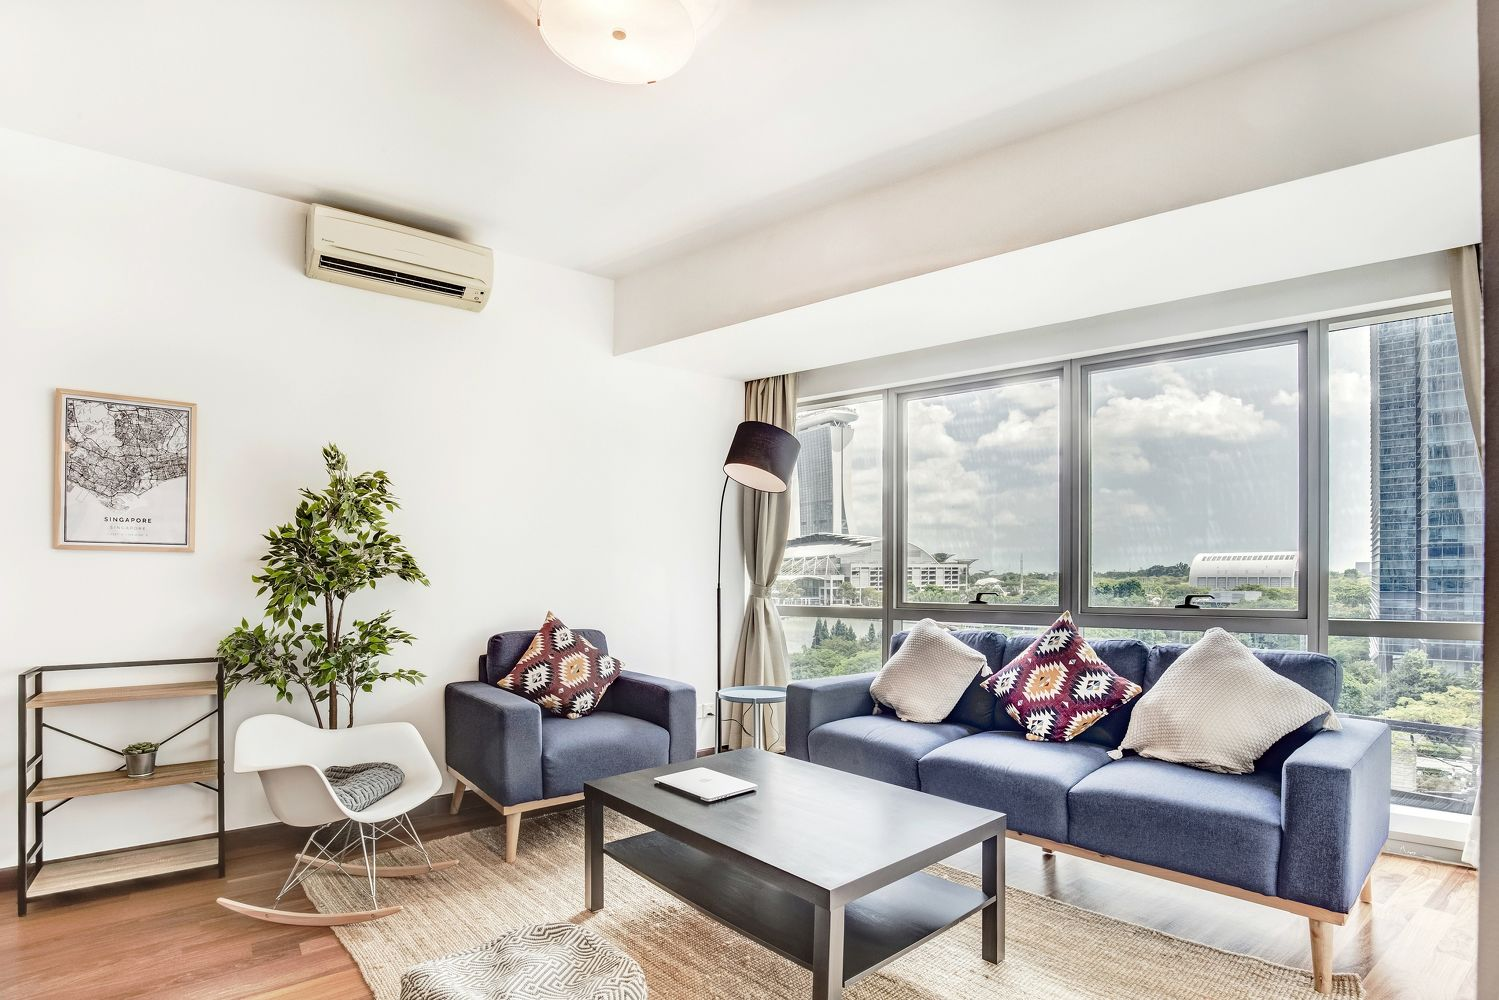 cove coliving - EDGEPROP SINGAPORE